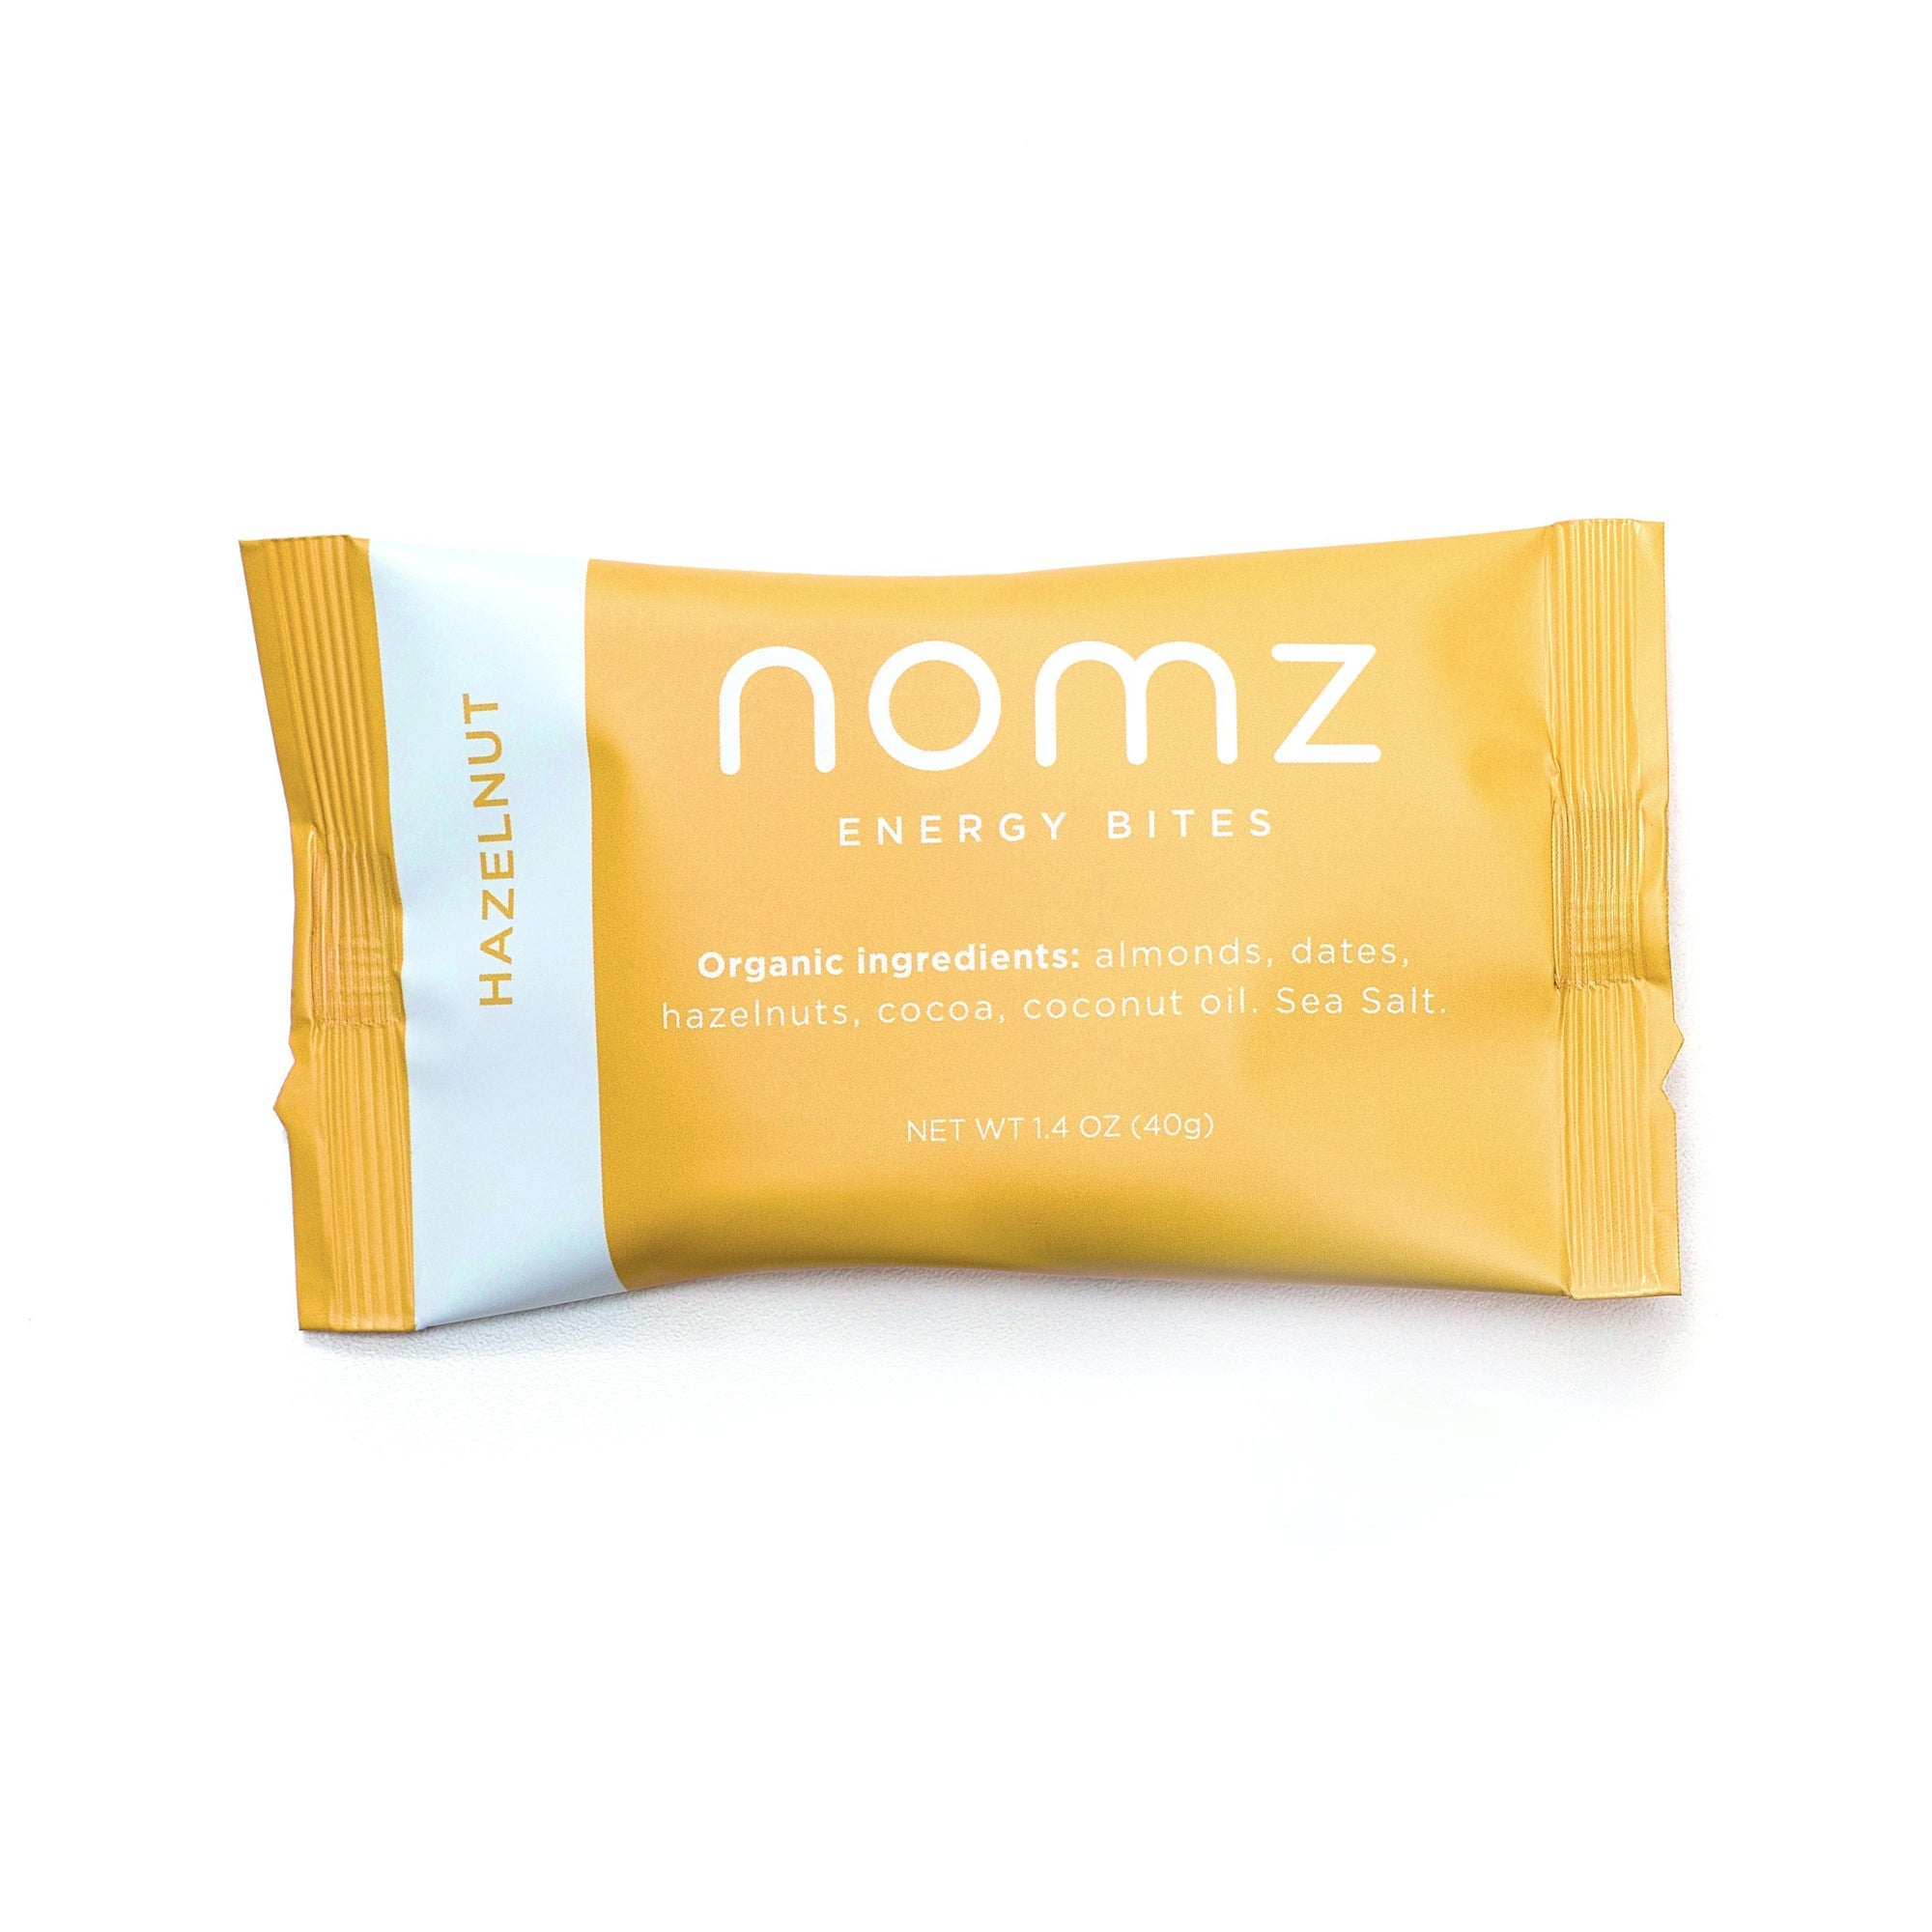 Food & Drink - Nomz - Energy Bites - Hazelnut - 40g